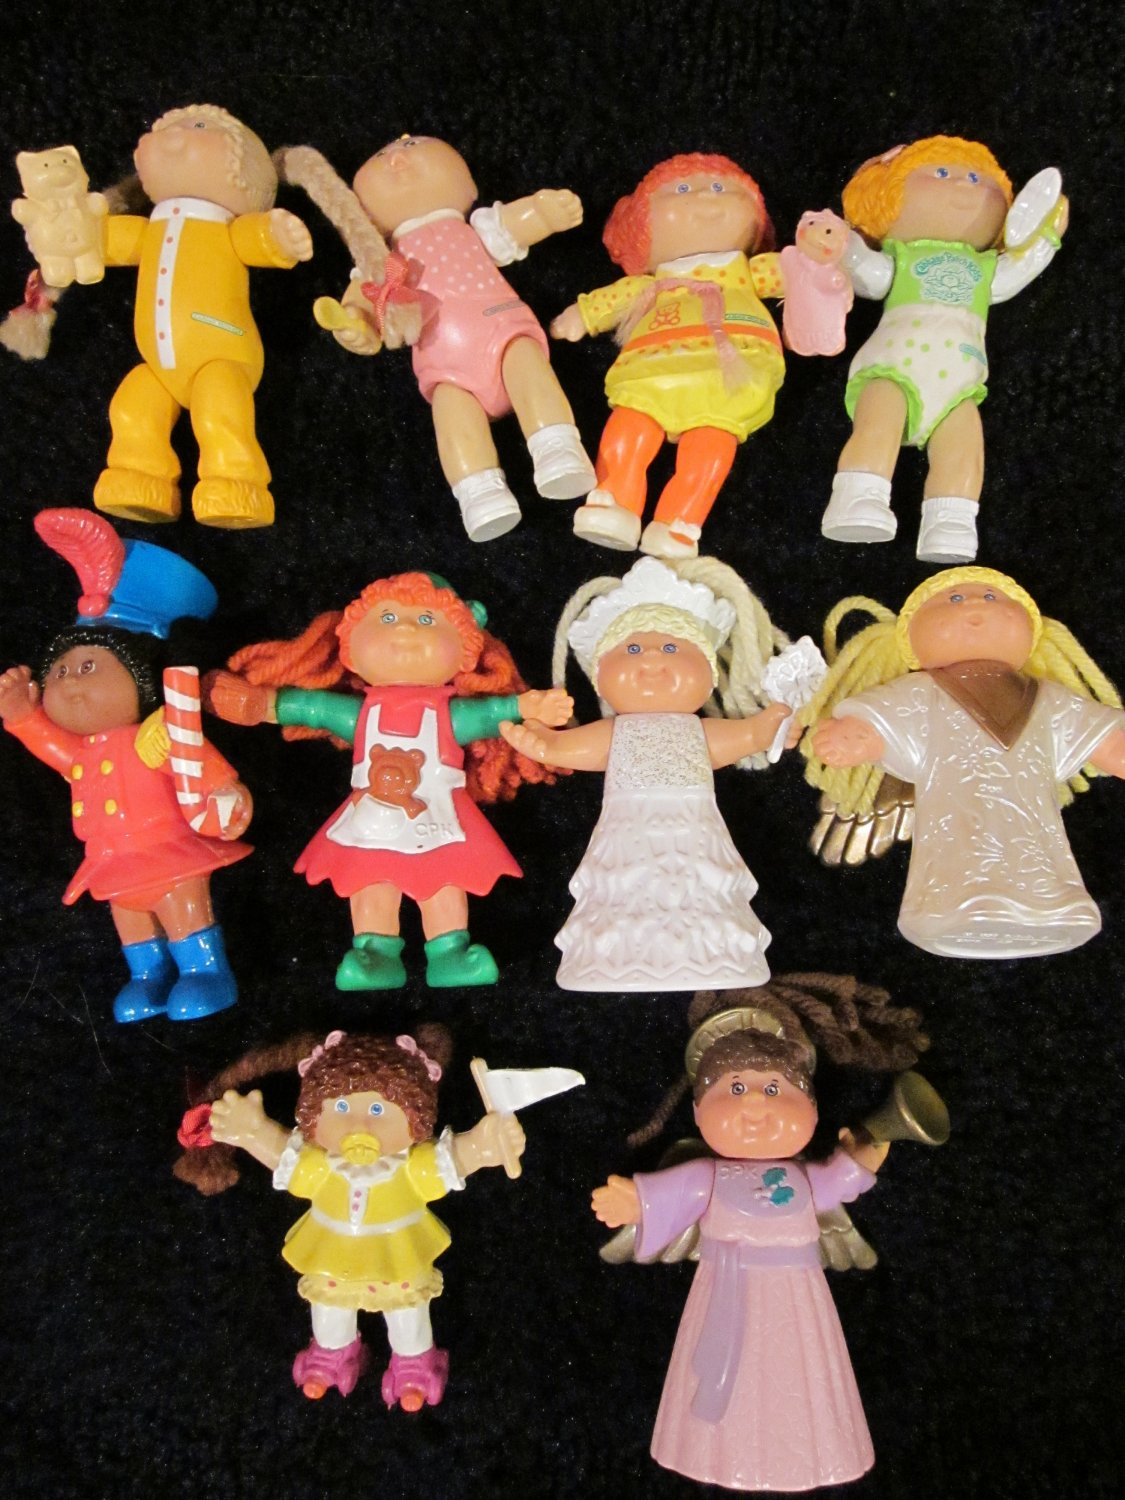 Vintage Cabbage Patch Kids poseable Figures